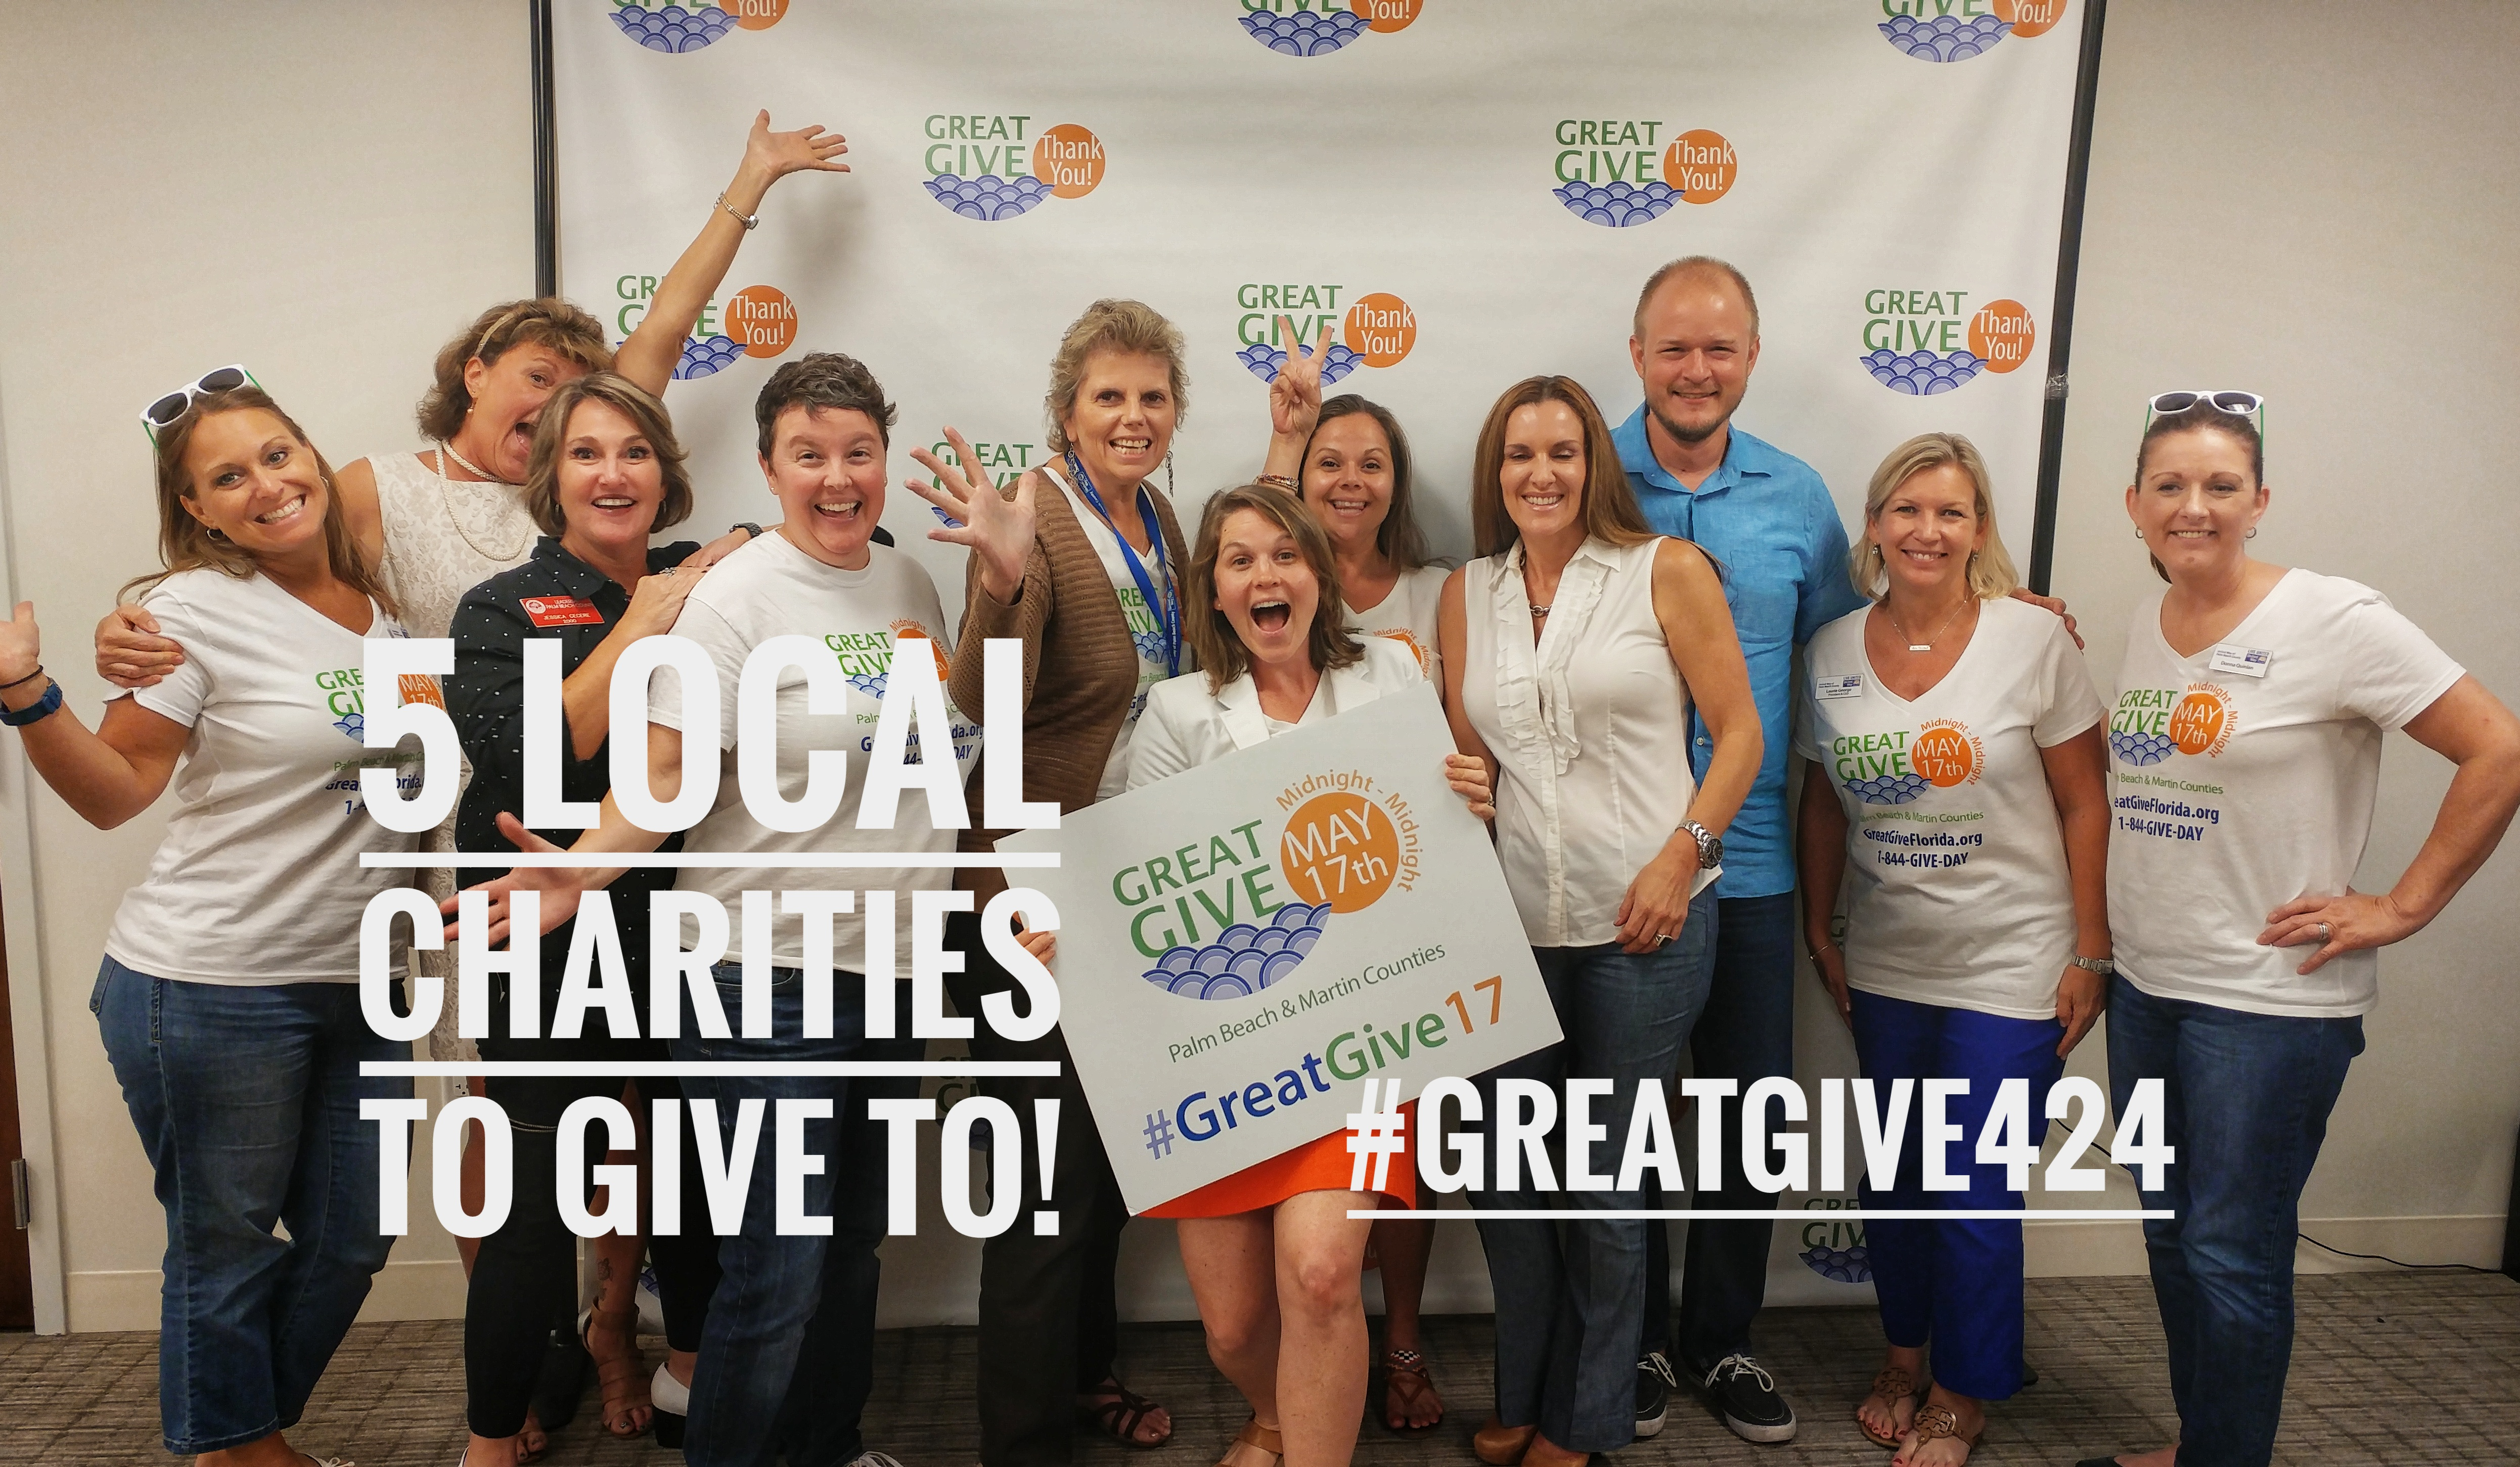 5 Local Charities To Help During The Great Give Today